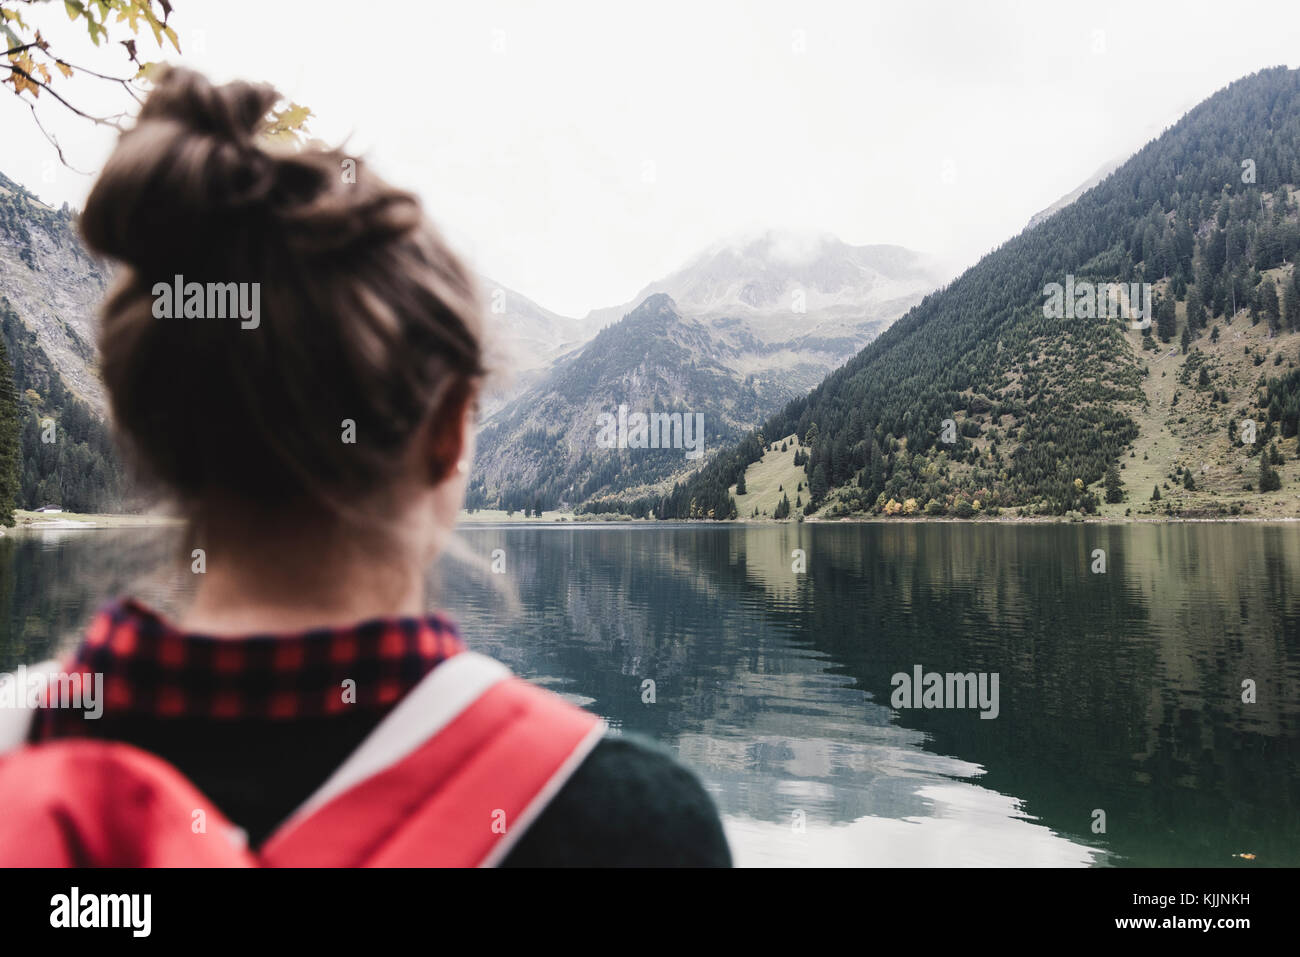 Austria, Tyrol, Alps, rear view of hiker at mountain lake - Stock Image